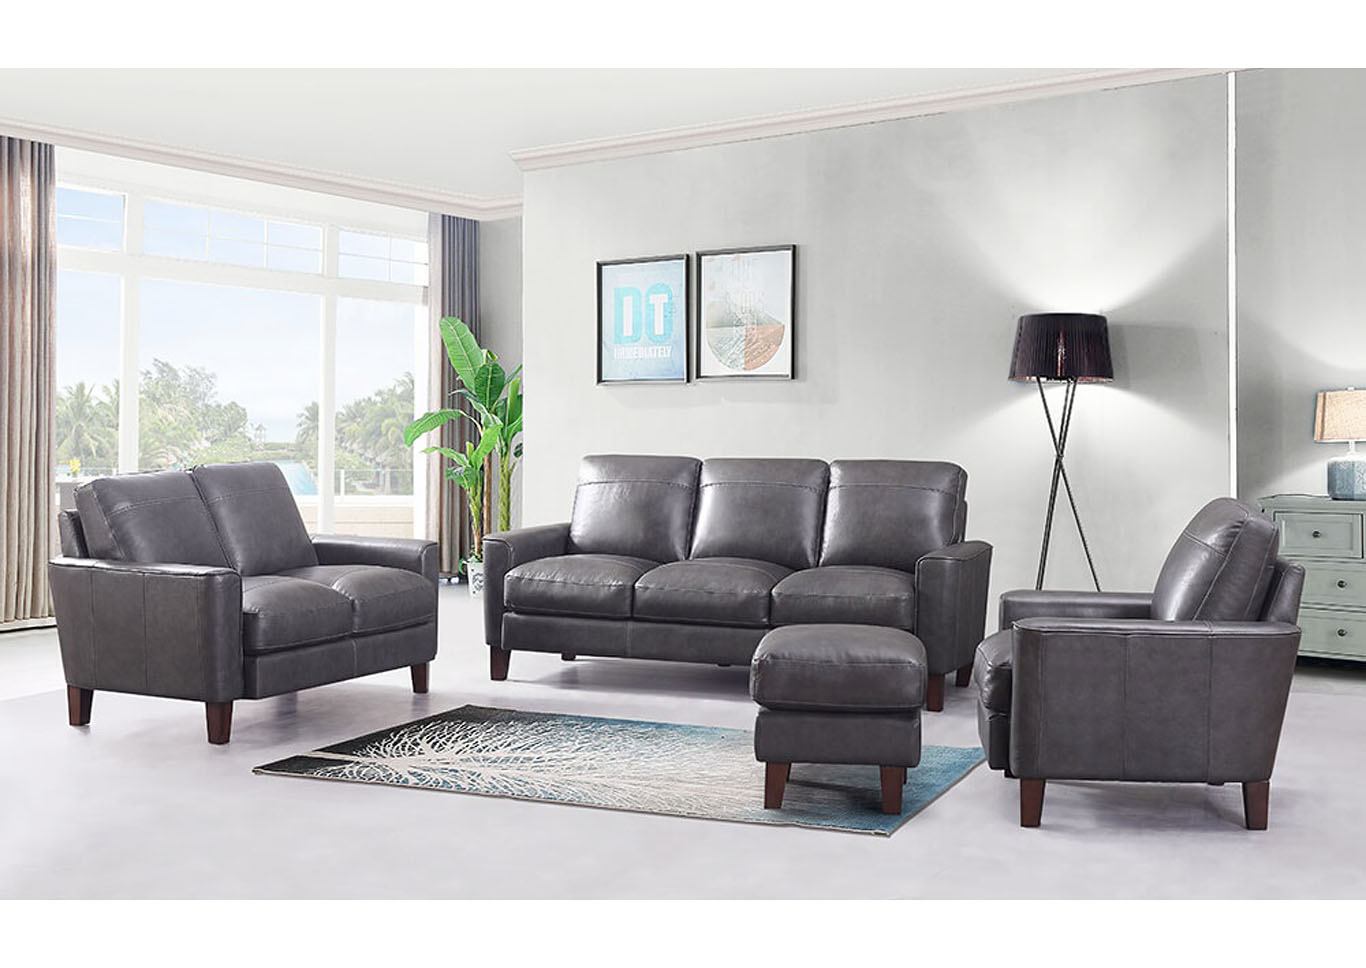 Chino Top Grain Leather Sofa and Love Seat - Gray,Instore